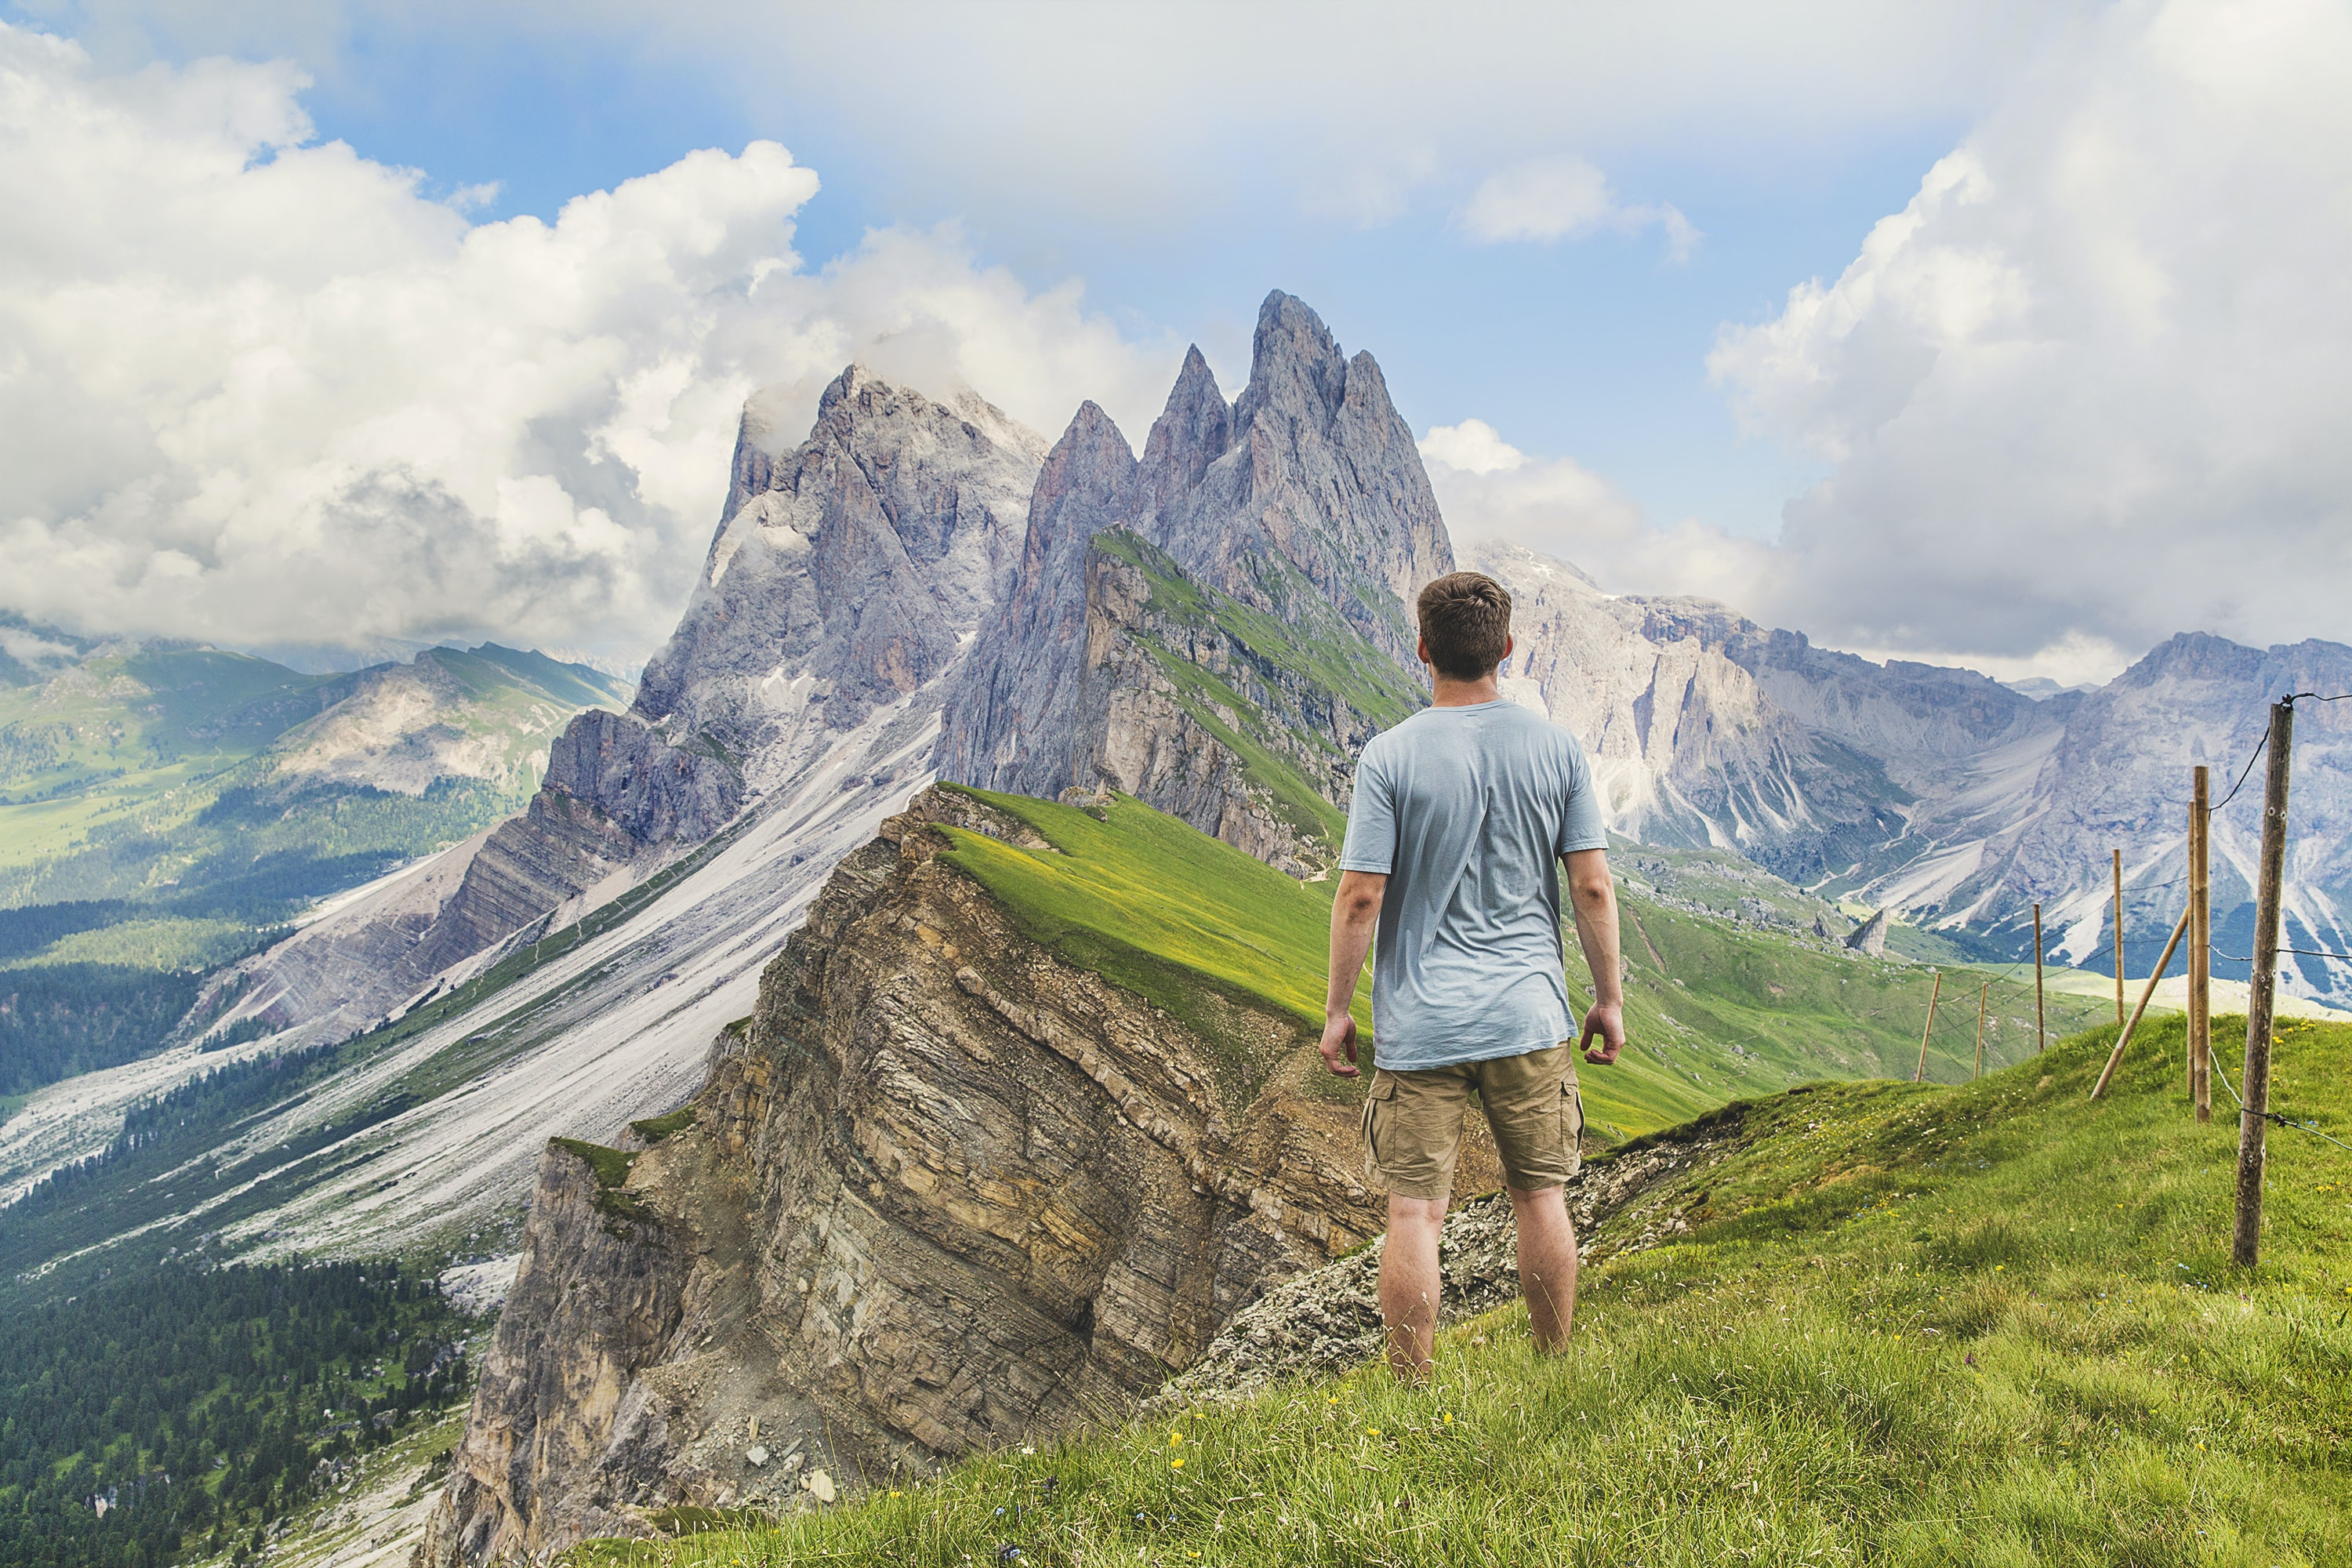 A man standing on a grass-covered ledge with view on craggy mountain peaks